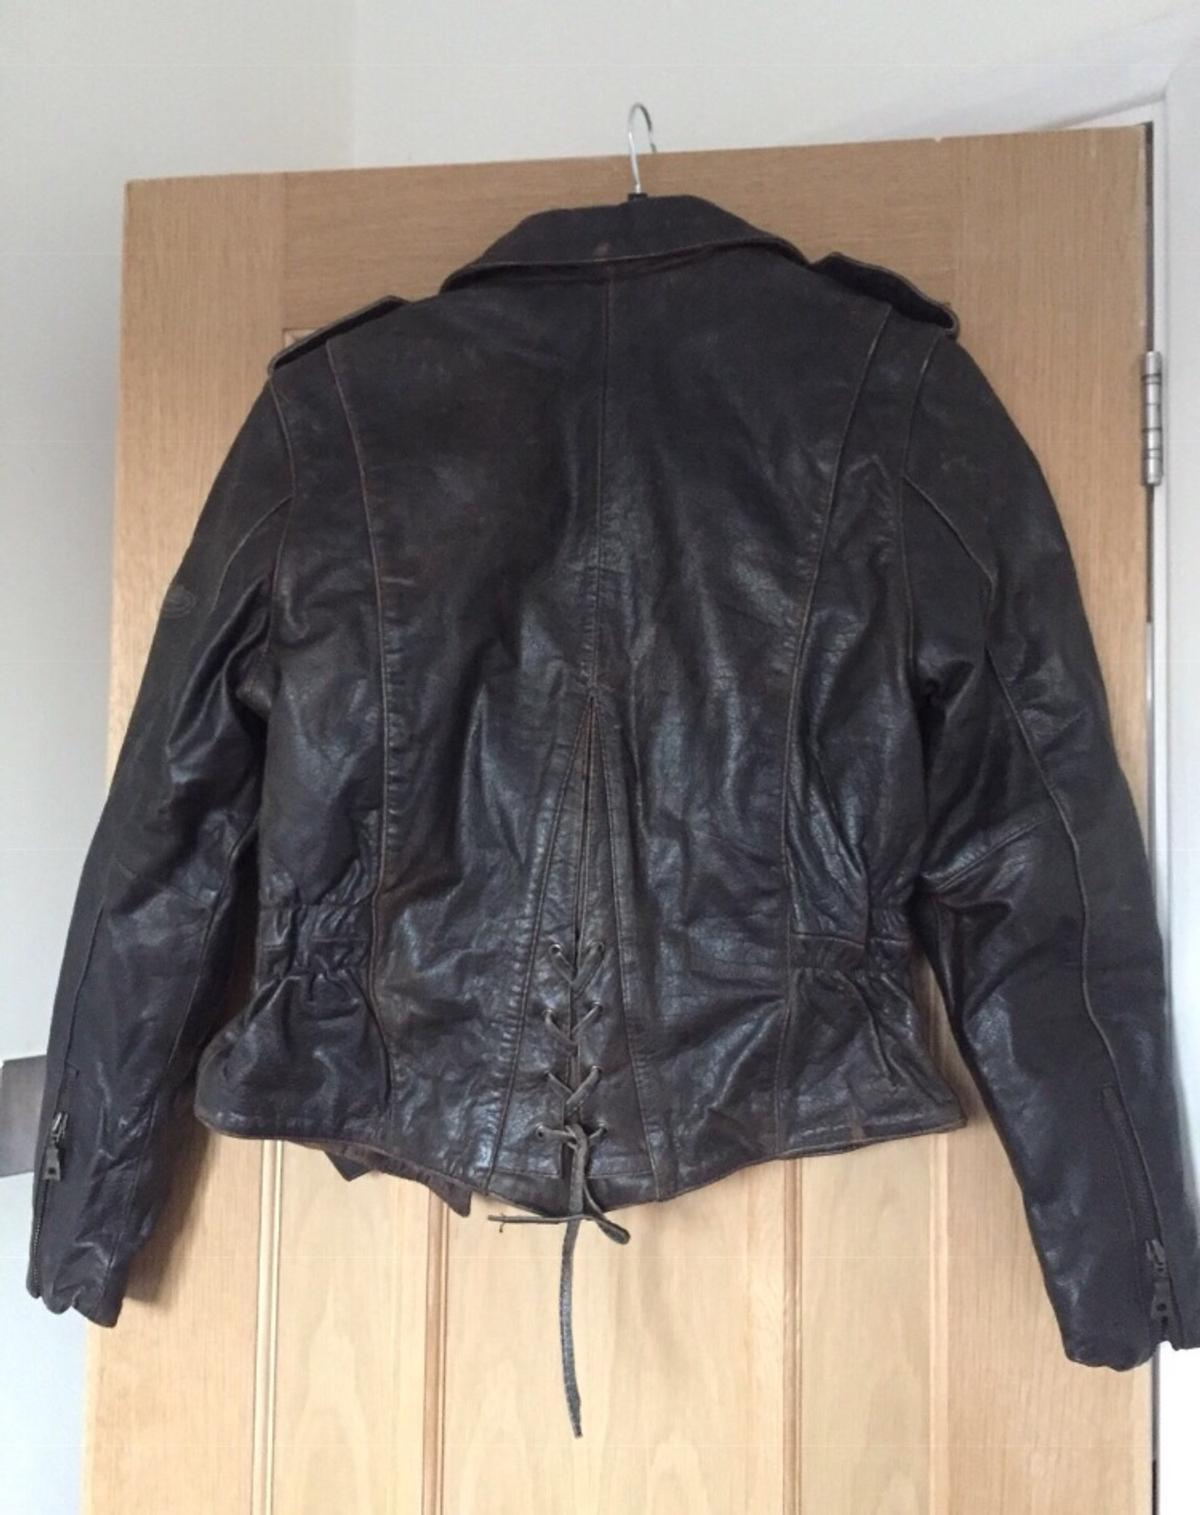 Vintage, new unused but old beautiful heavy and thinsulated authentic leather Jacket.  Captain Marvel movie she wears one very similar from age and time when riding the bike scene.  Has thinsulated lining so keeps you snug and warm.  size medium - M  Really has character and personality this Jacket.  Originally about $300 US.  Need quick sale so please make sensible offers Thanks  PayPal accepted. Cash and pick up preferred and can discount for this